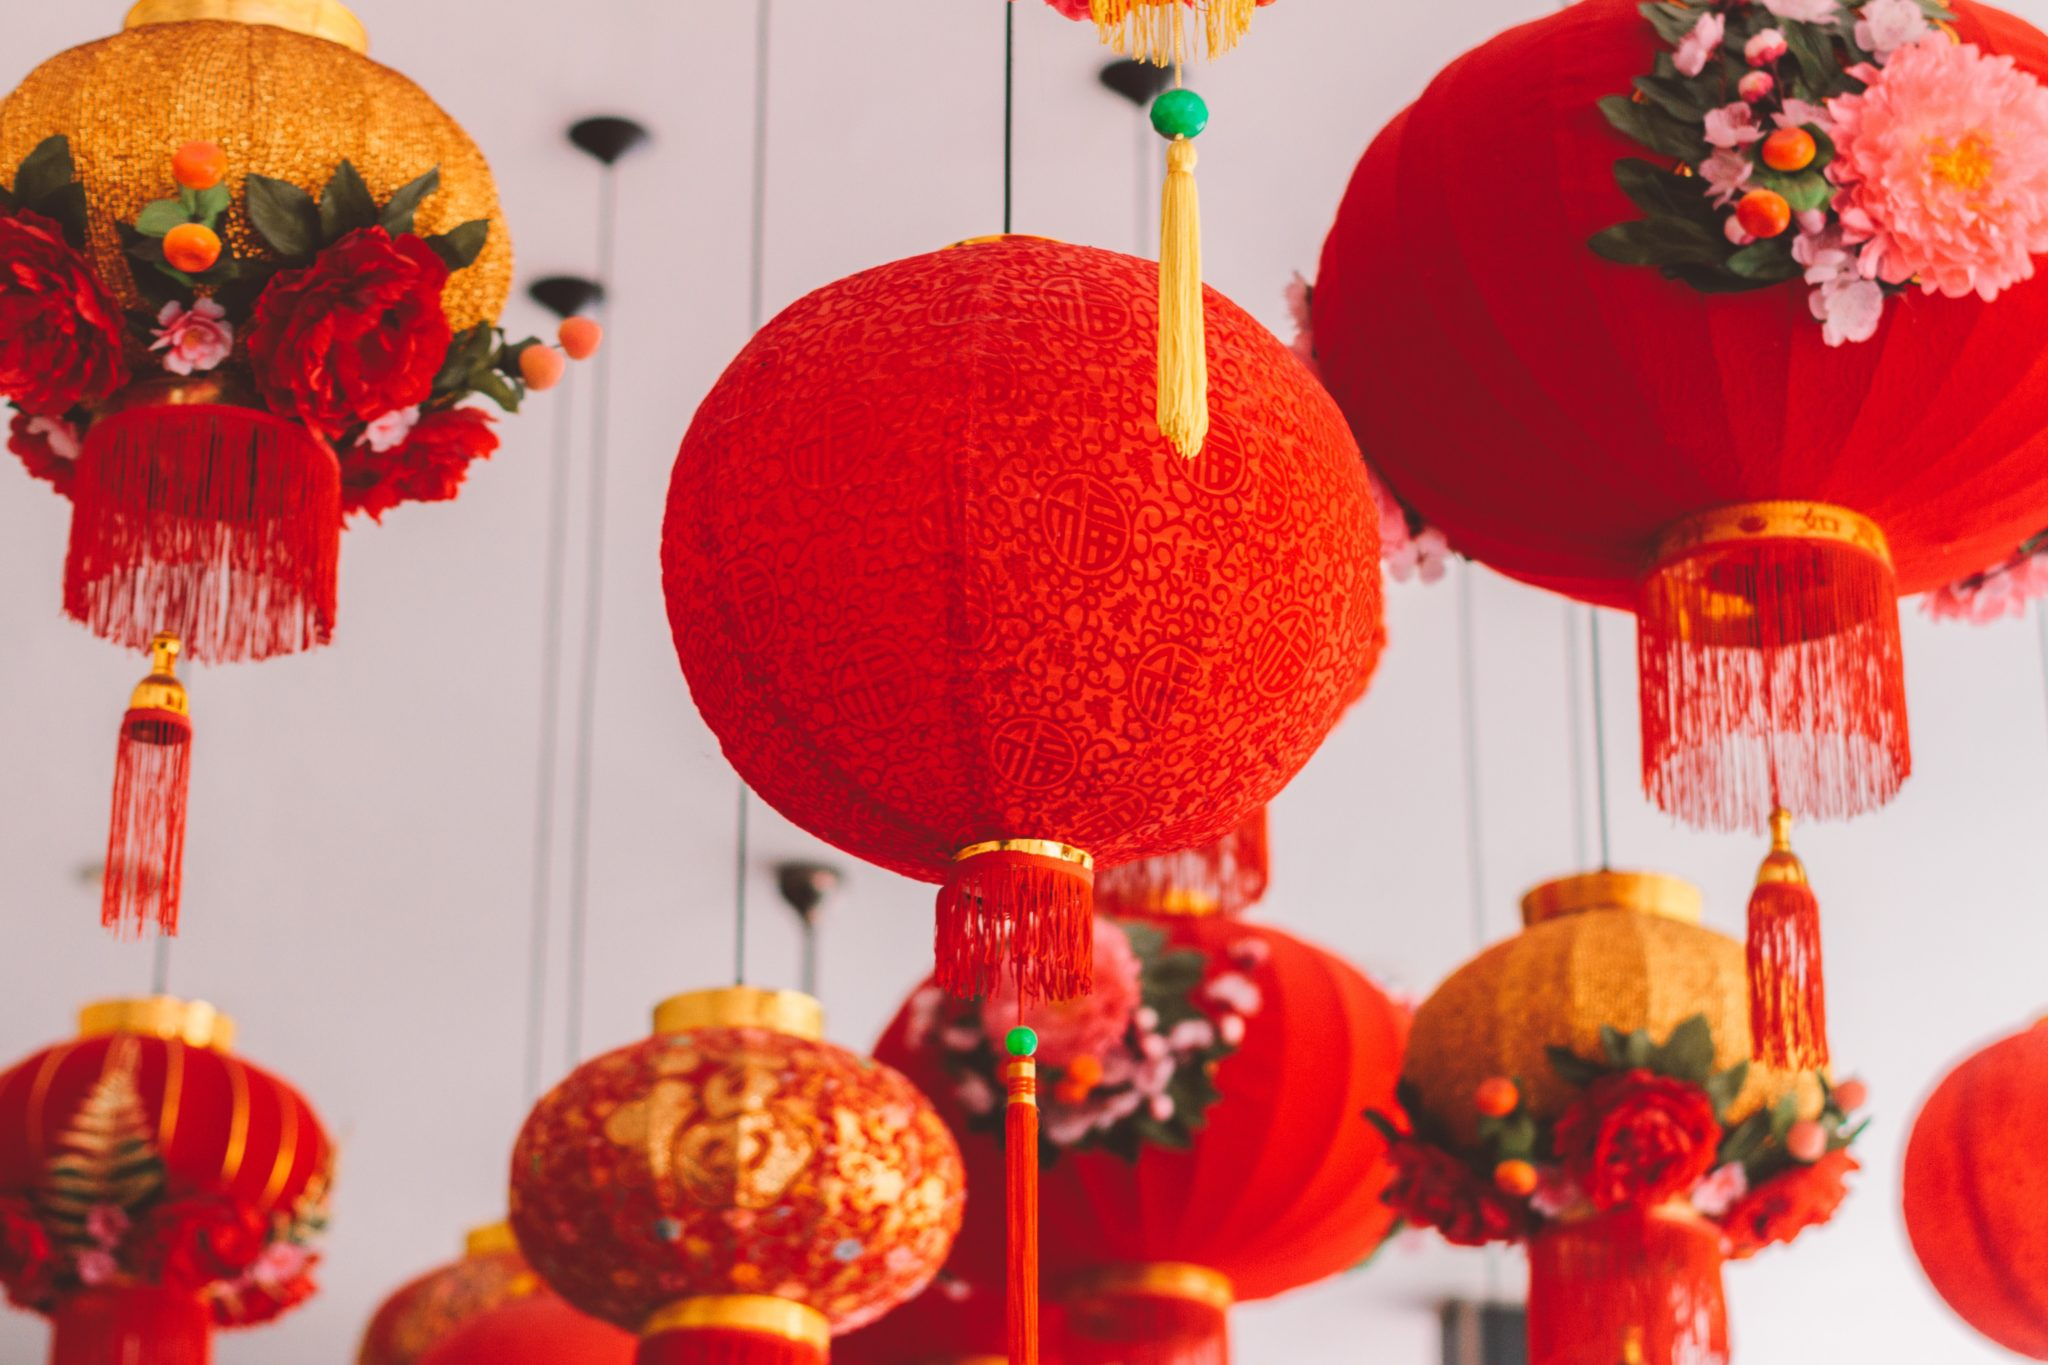 Lunar new year decorations in red color